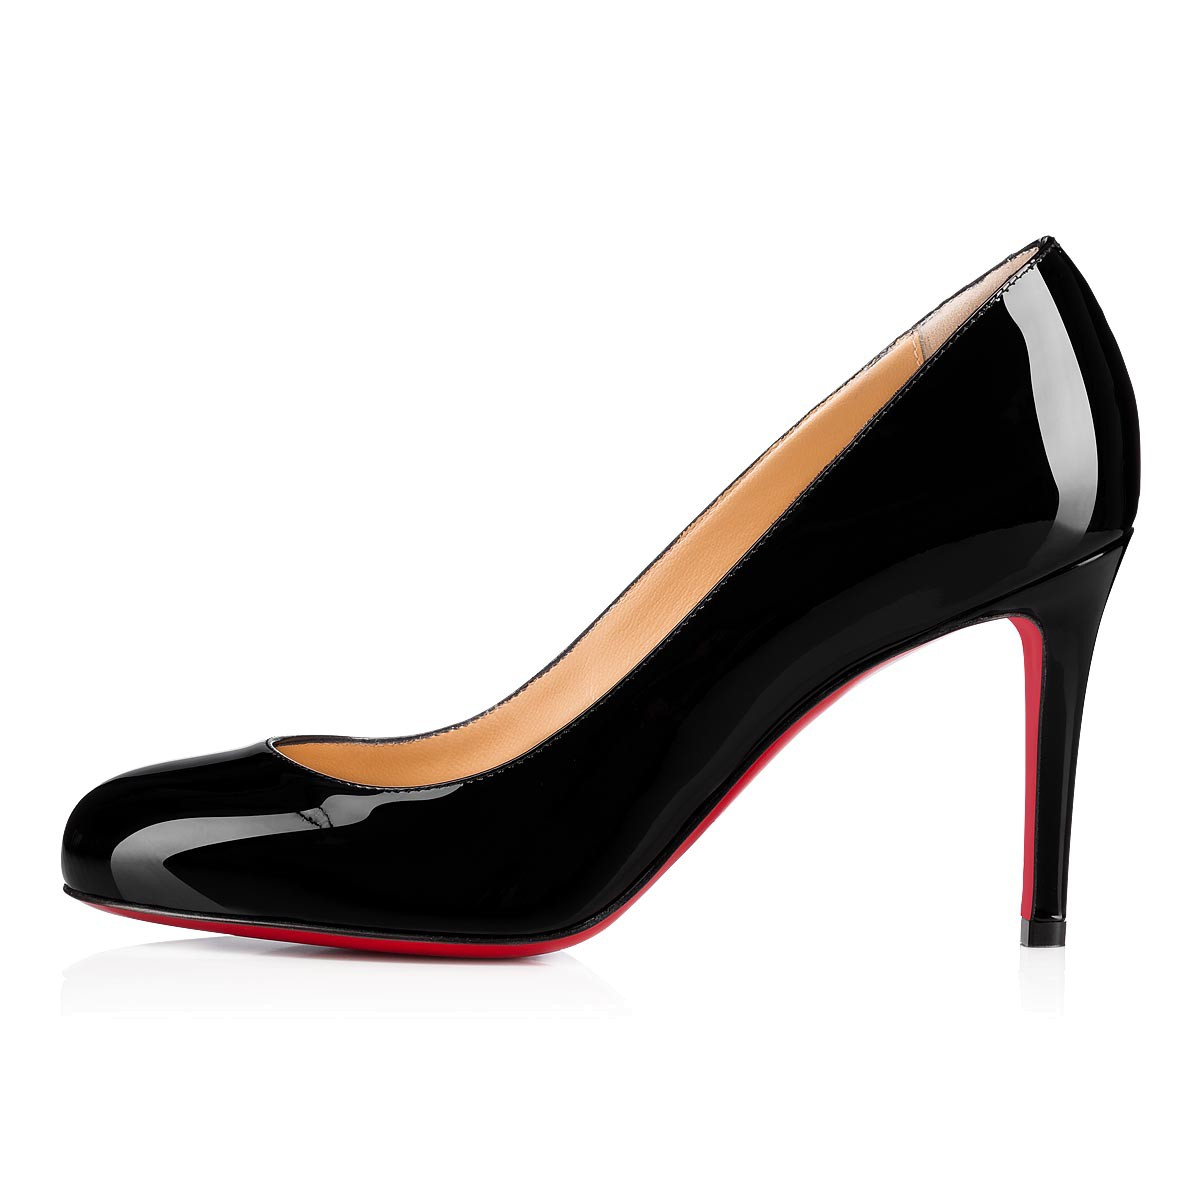 b8222b6b5387 Shoes - Fifille - Christian Louboutin Shoes - Fifille - Christian Louboutin  ...